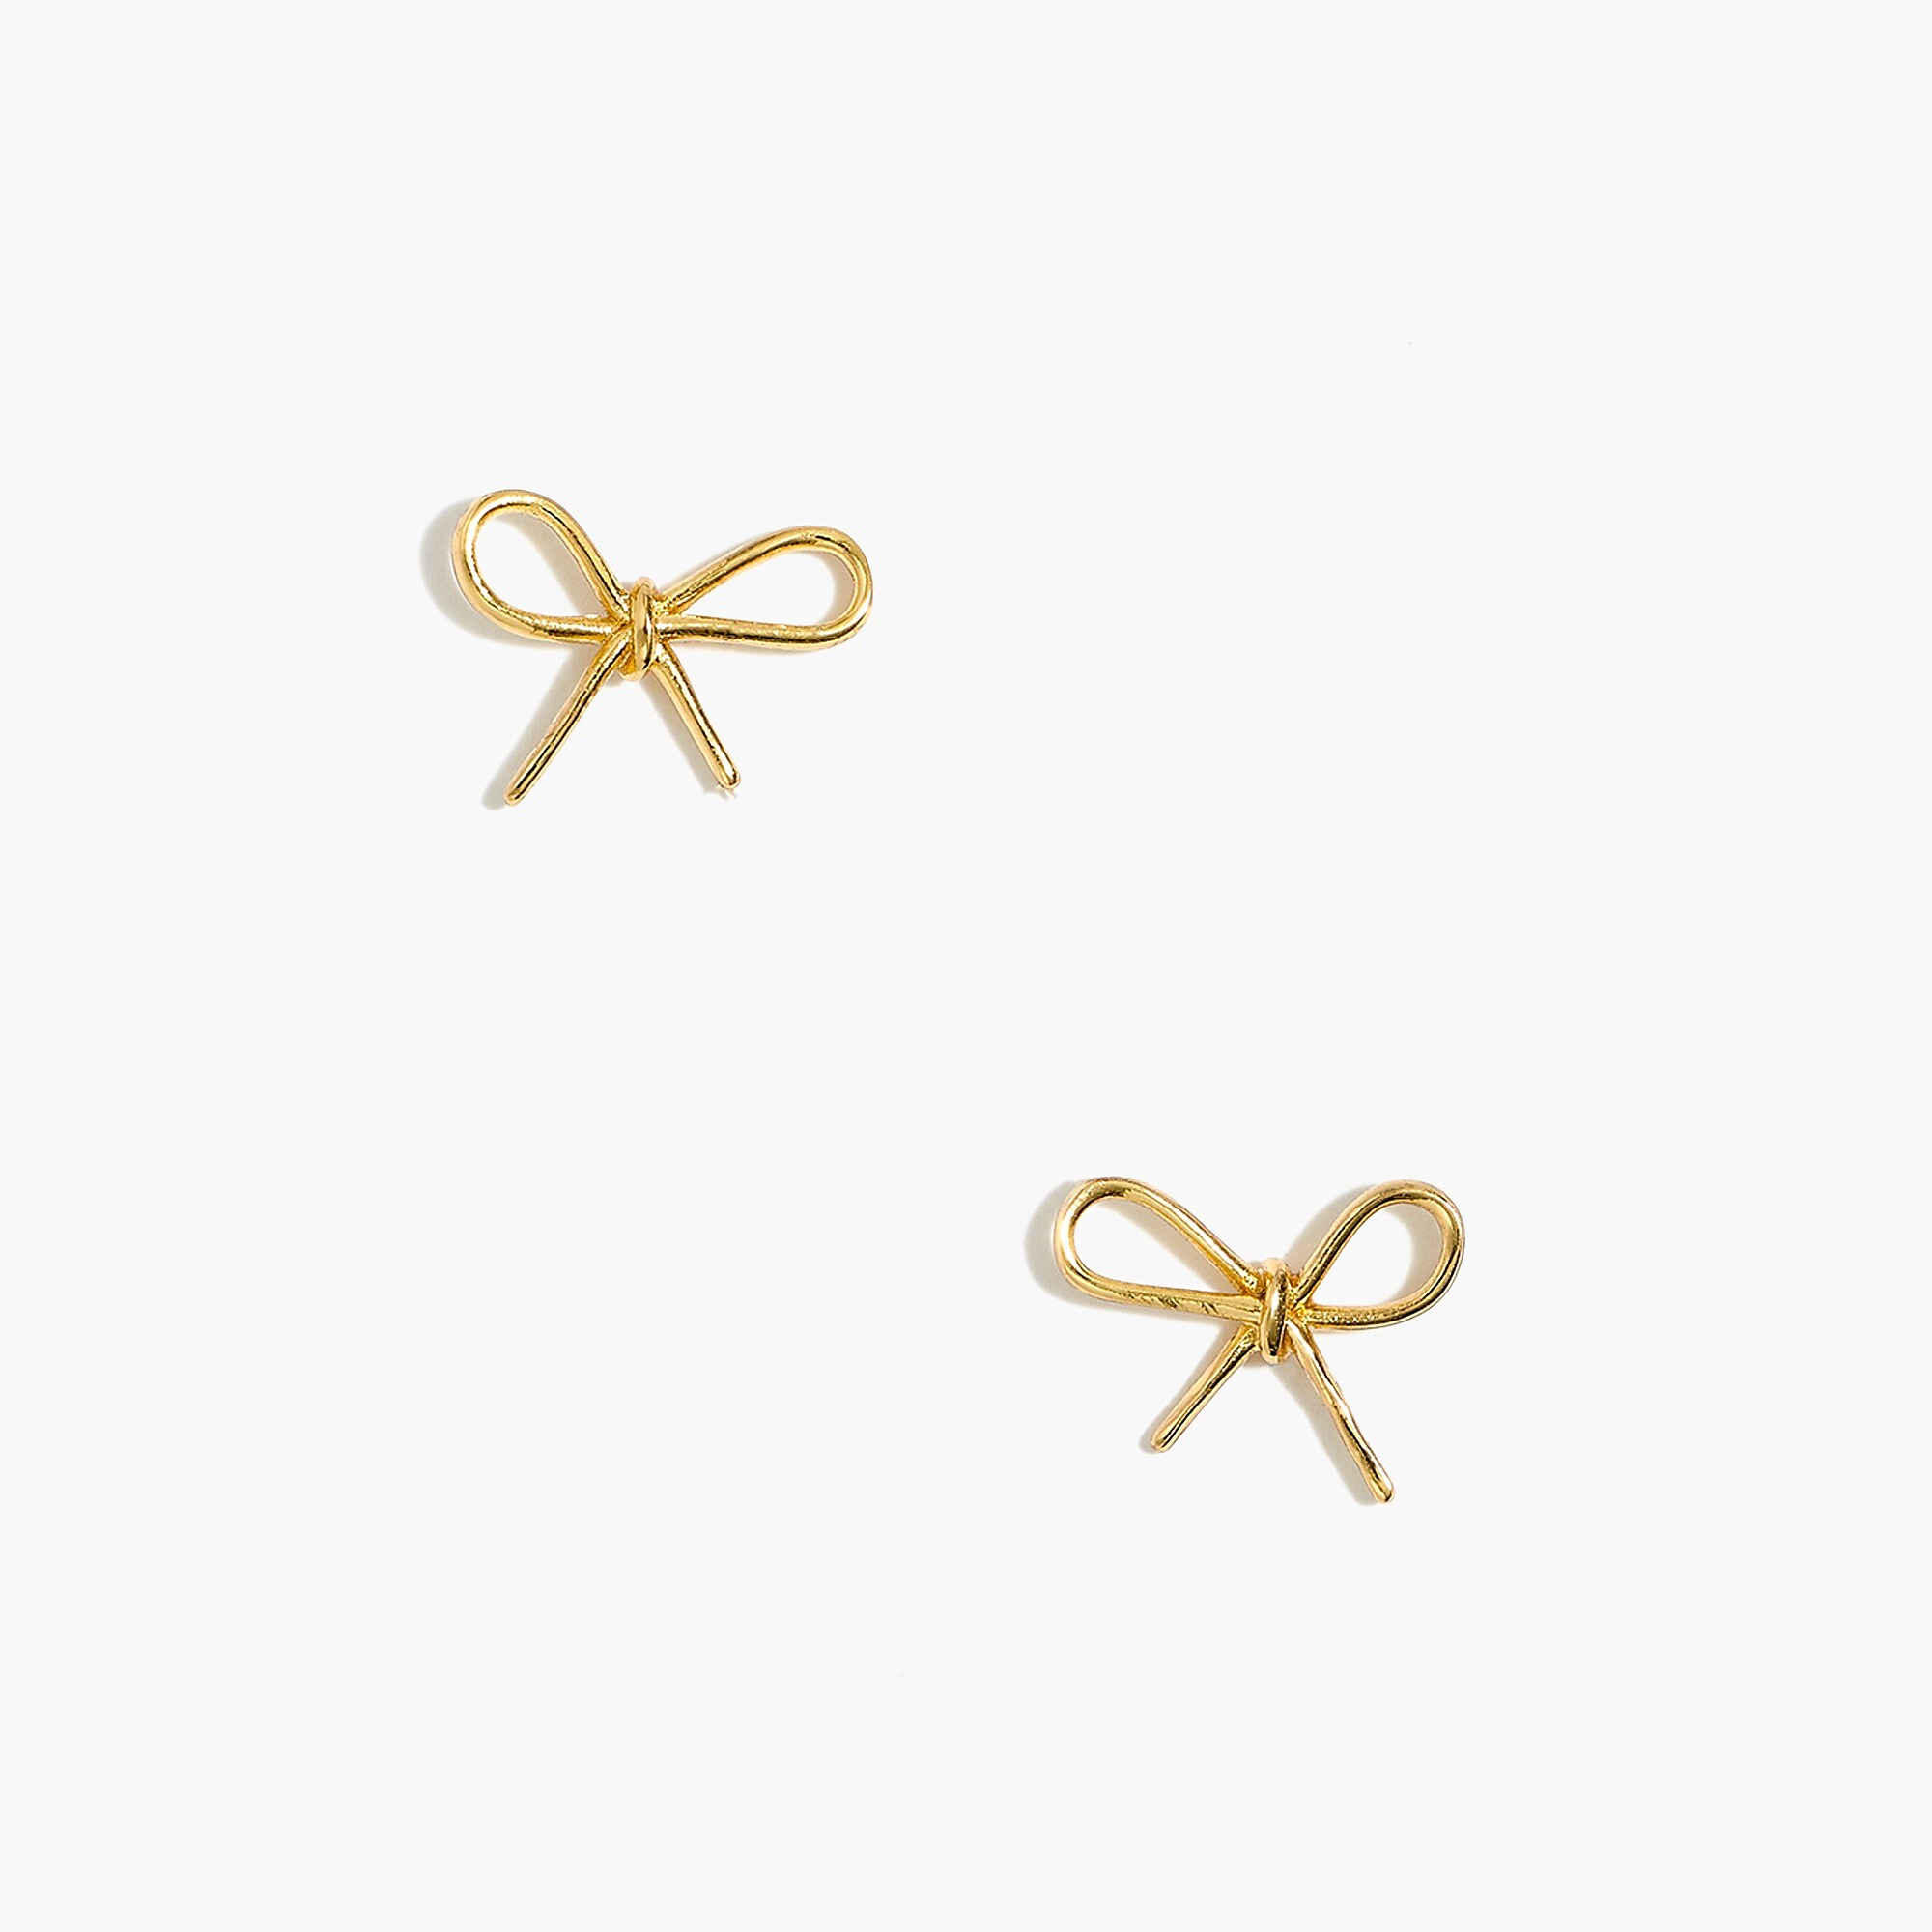 WEEKLY FINDS // Golden Bow Stud Earrings and Favorite Billie Razor